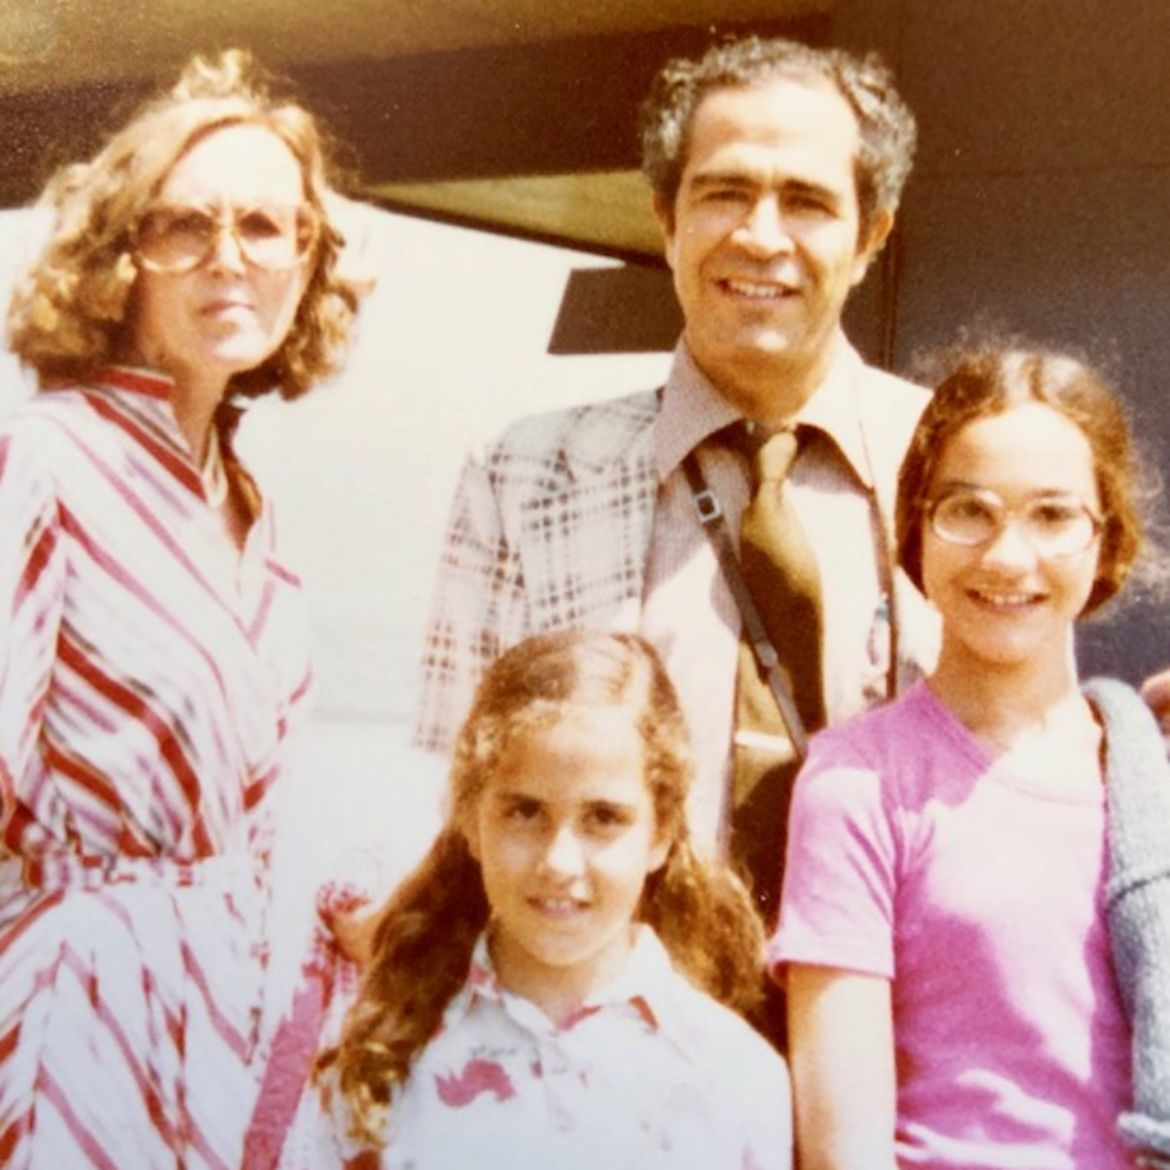 Cover Photo: The author and her family.